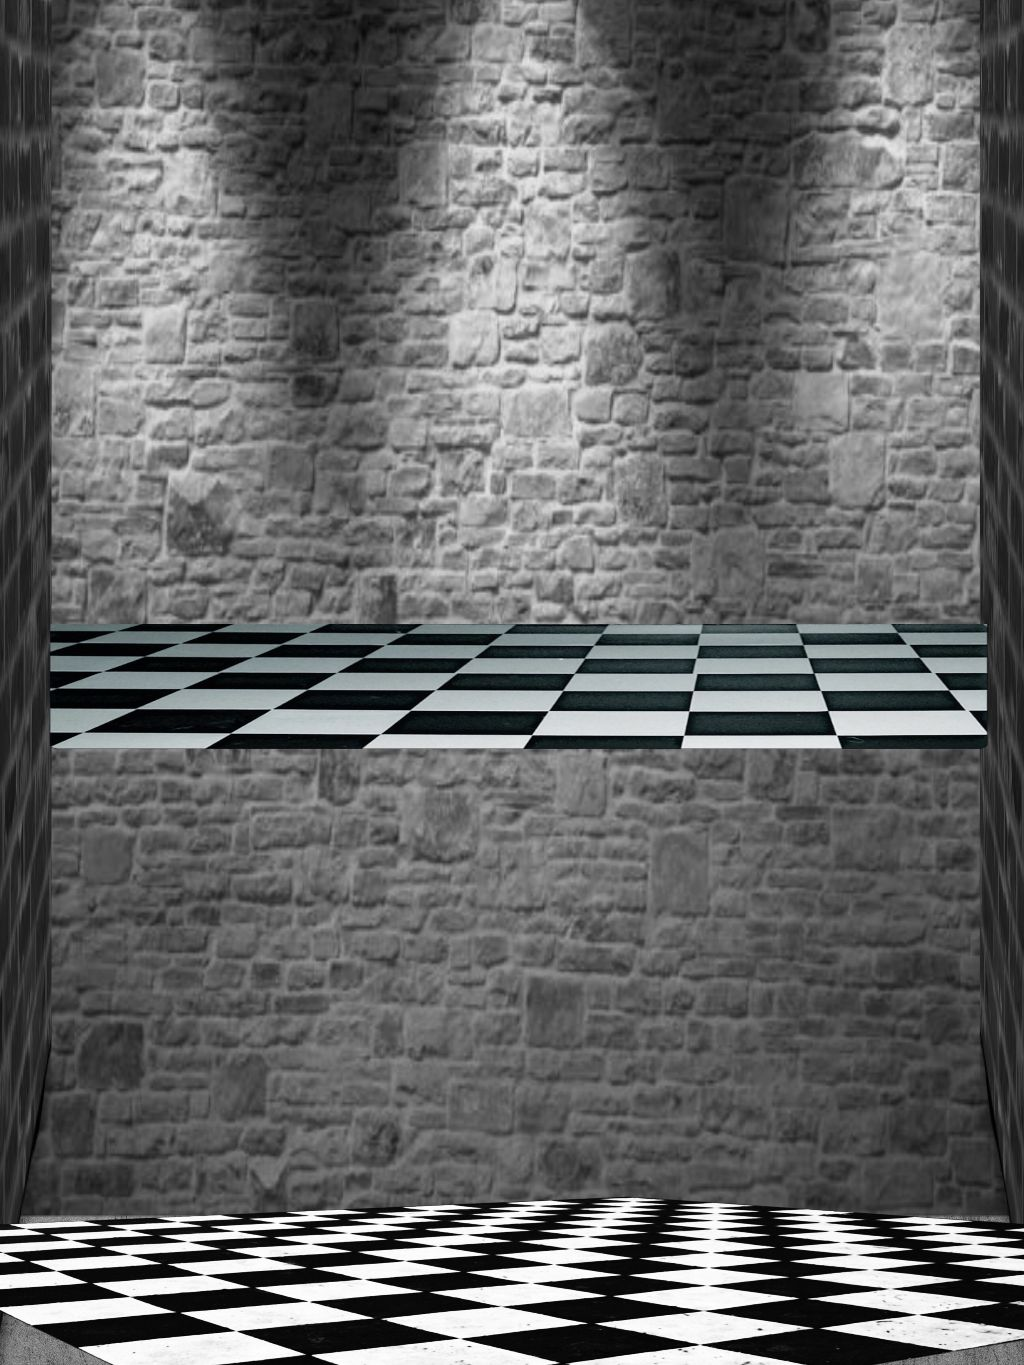 #freetoedit #backgrounds #emptyrooms #chess